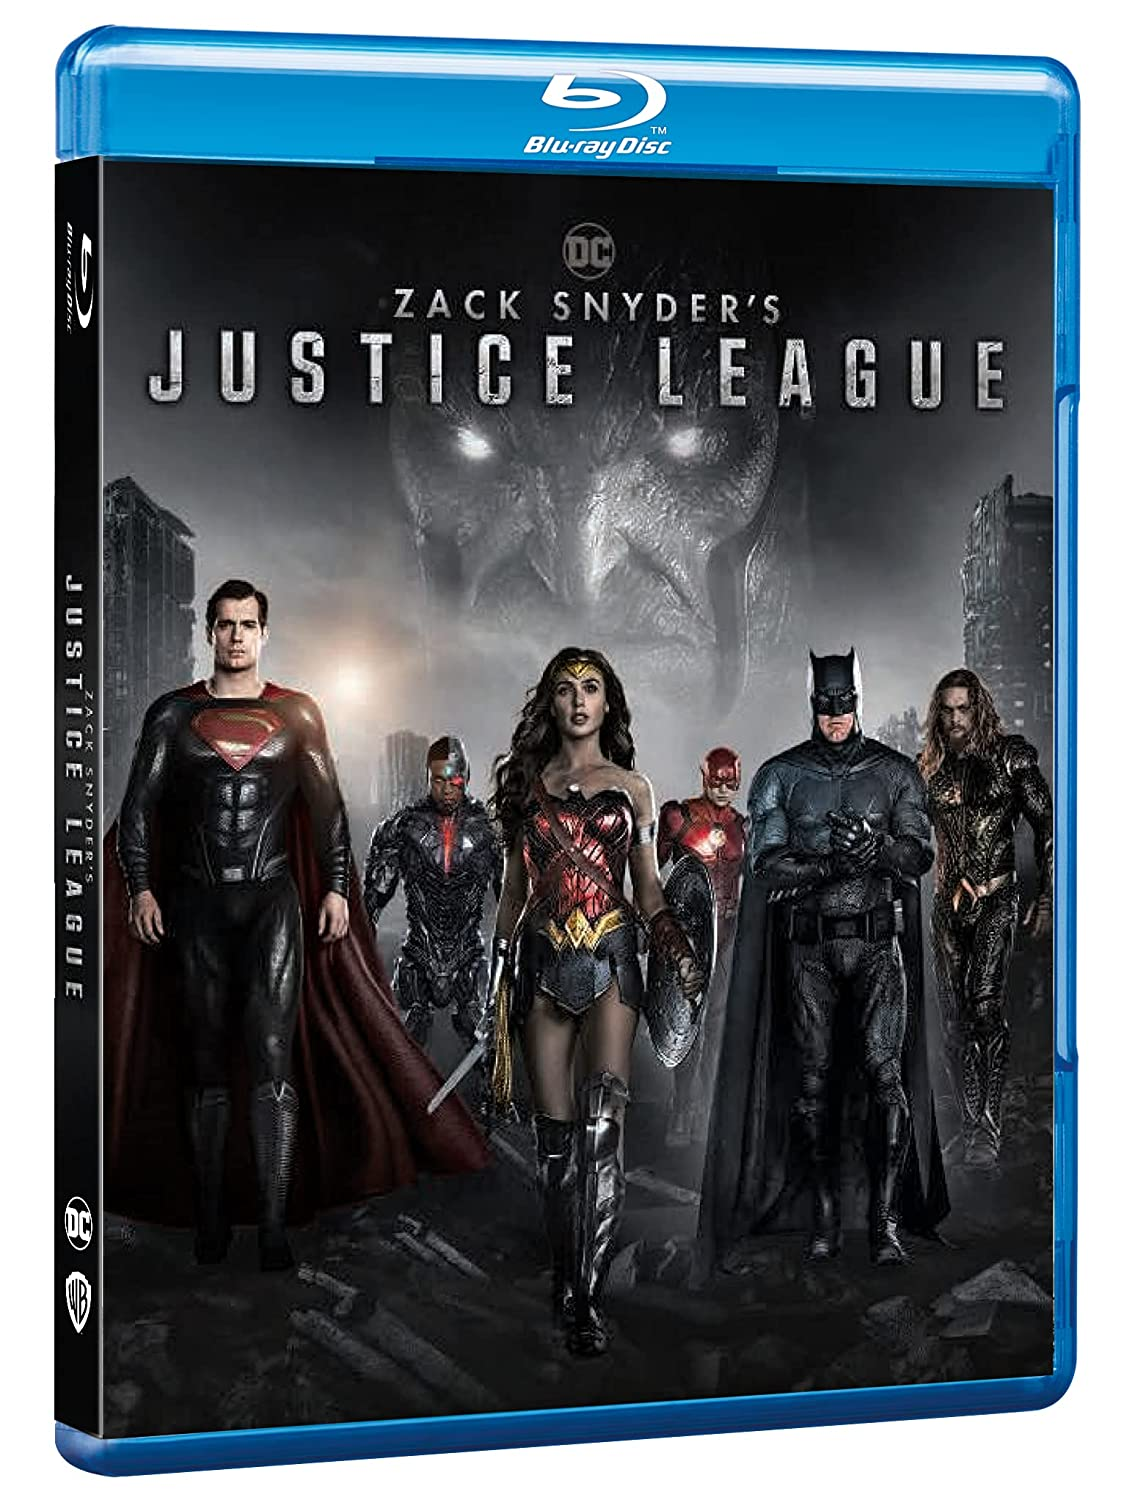 ZACK SNYDER'S JUSTICE LEAGUE - BLU RAY